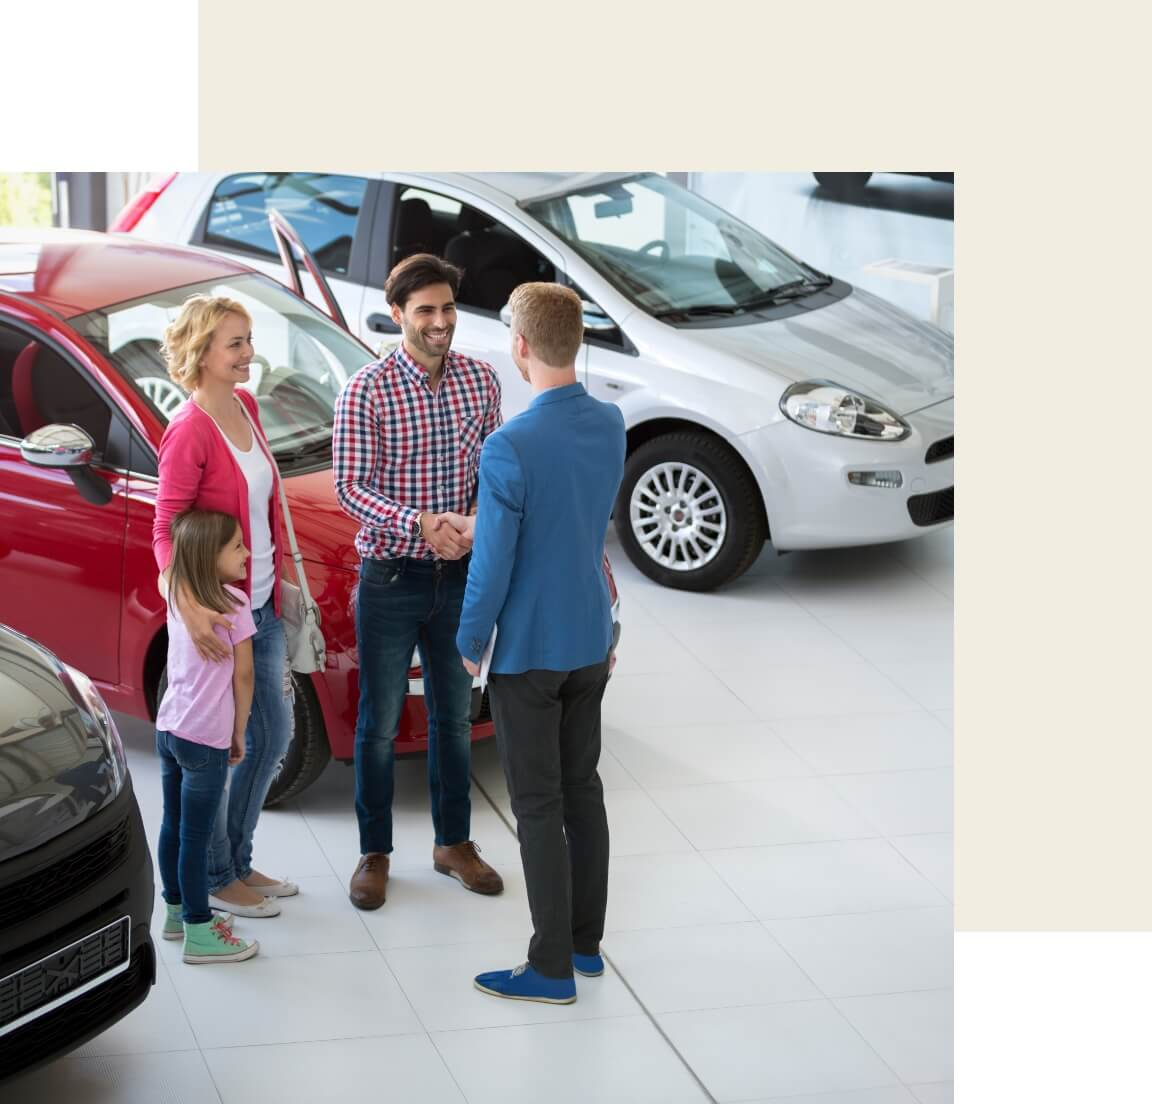 A car salesman talking to a family